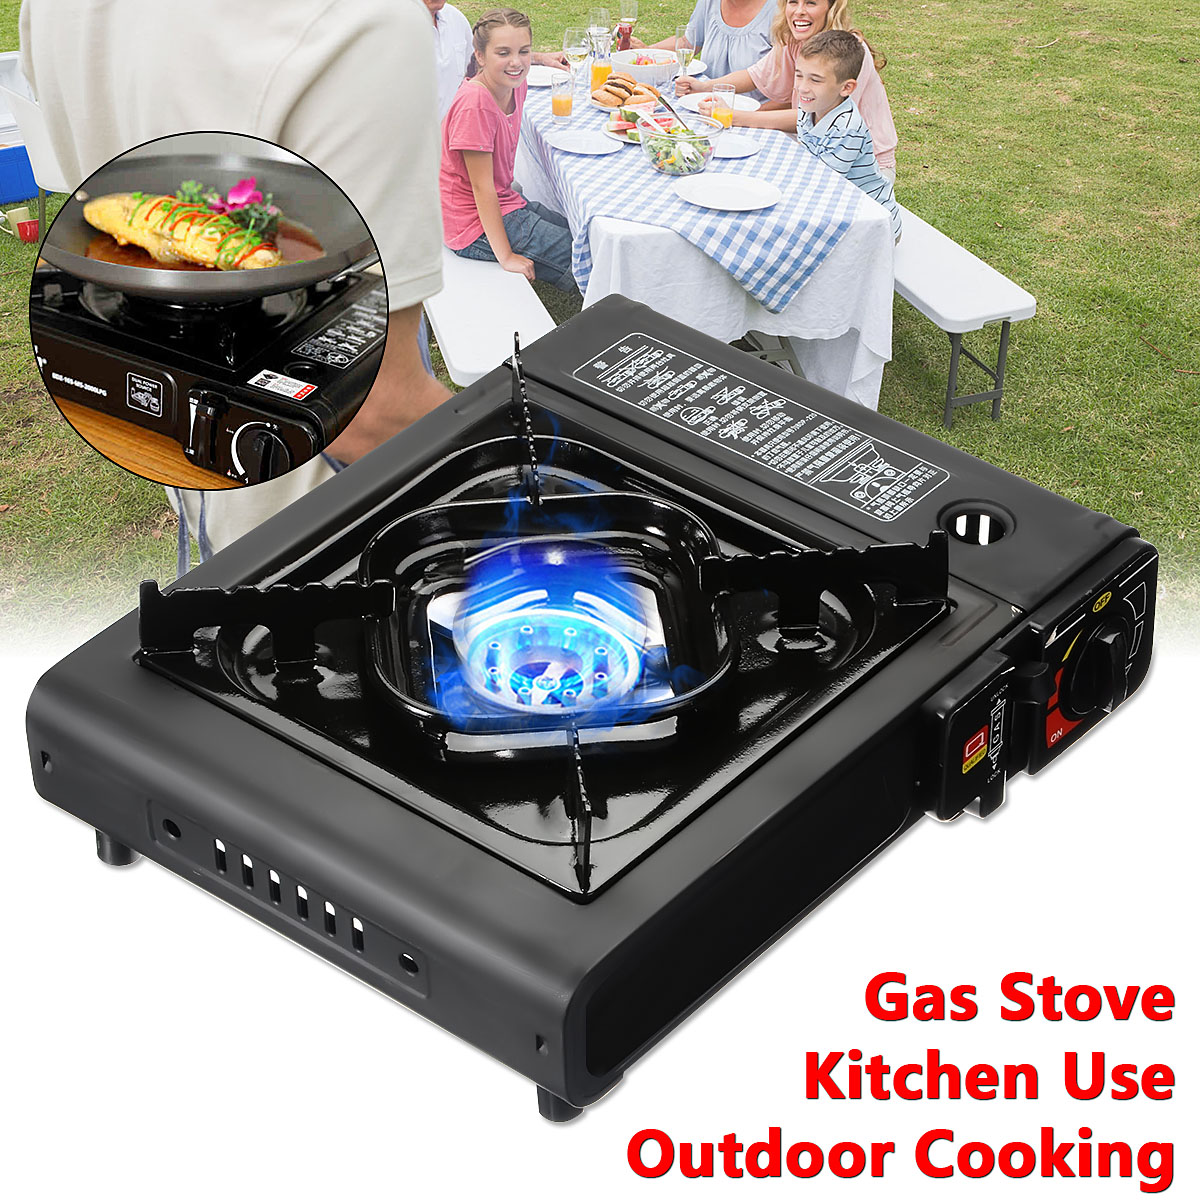 2900W Portable Camping Gas Cooking Stove Butane Burner Outdoor Picnic Kitchen Cooker